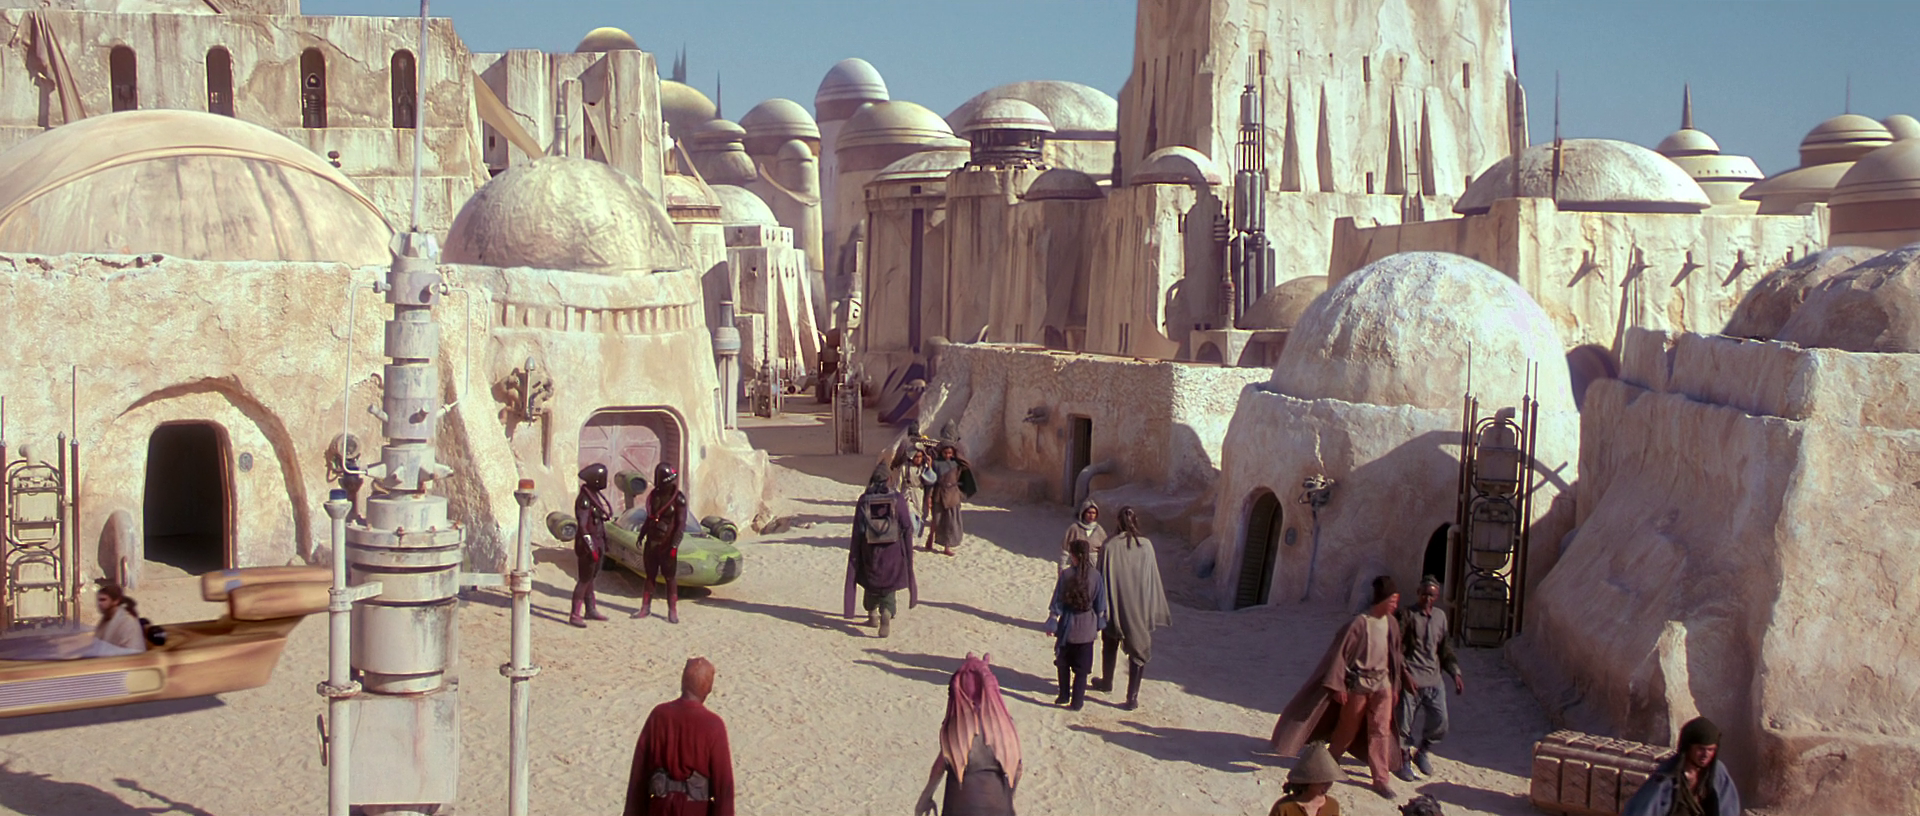 7 Legendary Star Wars Filming Locations You Can Visit In Tunisia Virginia Duran